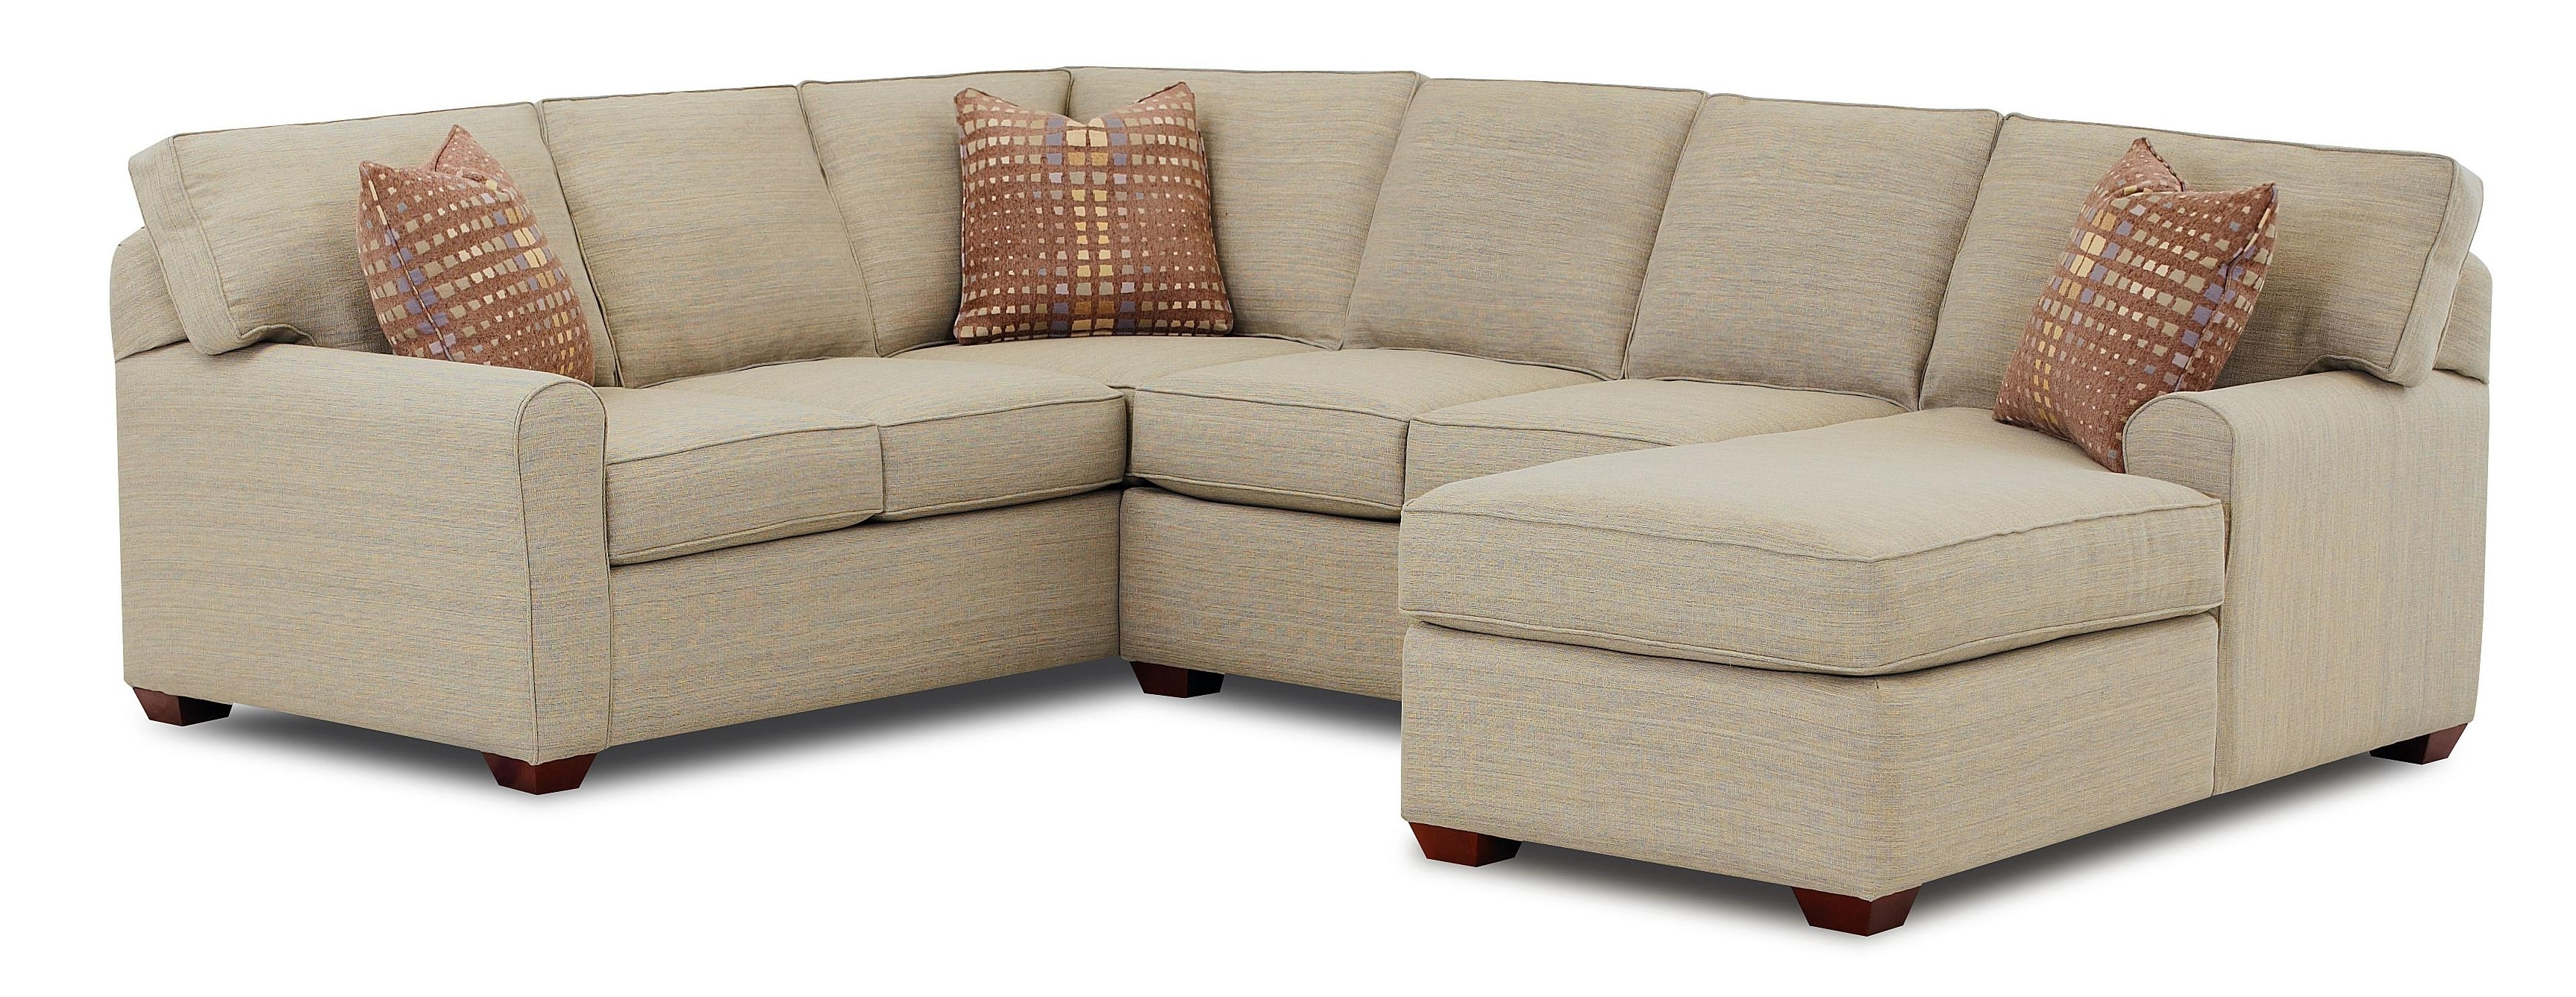 Popular Left Chaise Sectionals Pertaining To Sectional Sofa With Left Facing Chaise Loungeklaussner (View 6 of 15)